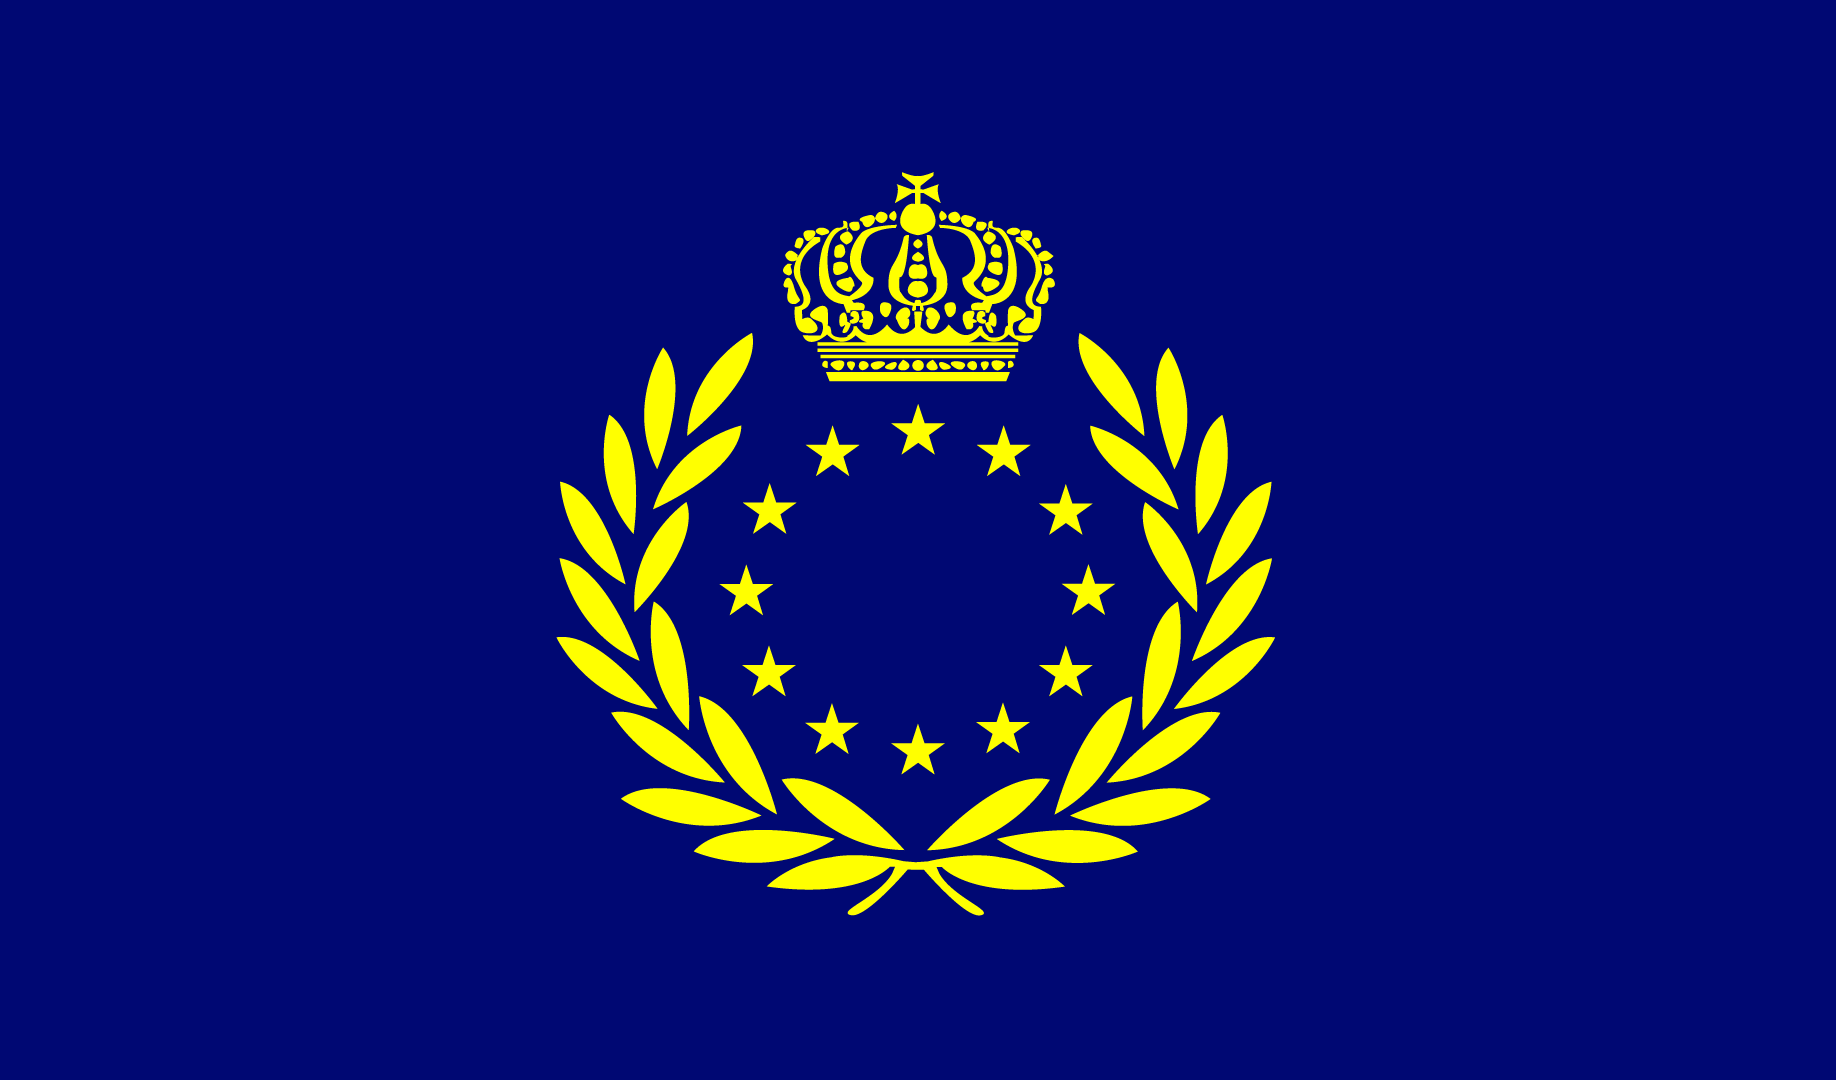 The Pan-European Movement Insignia: the Greater Twelve Stars of a United Europe